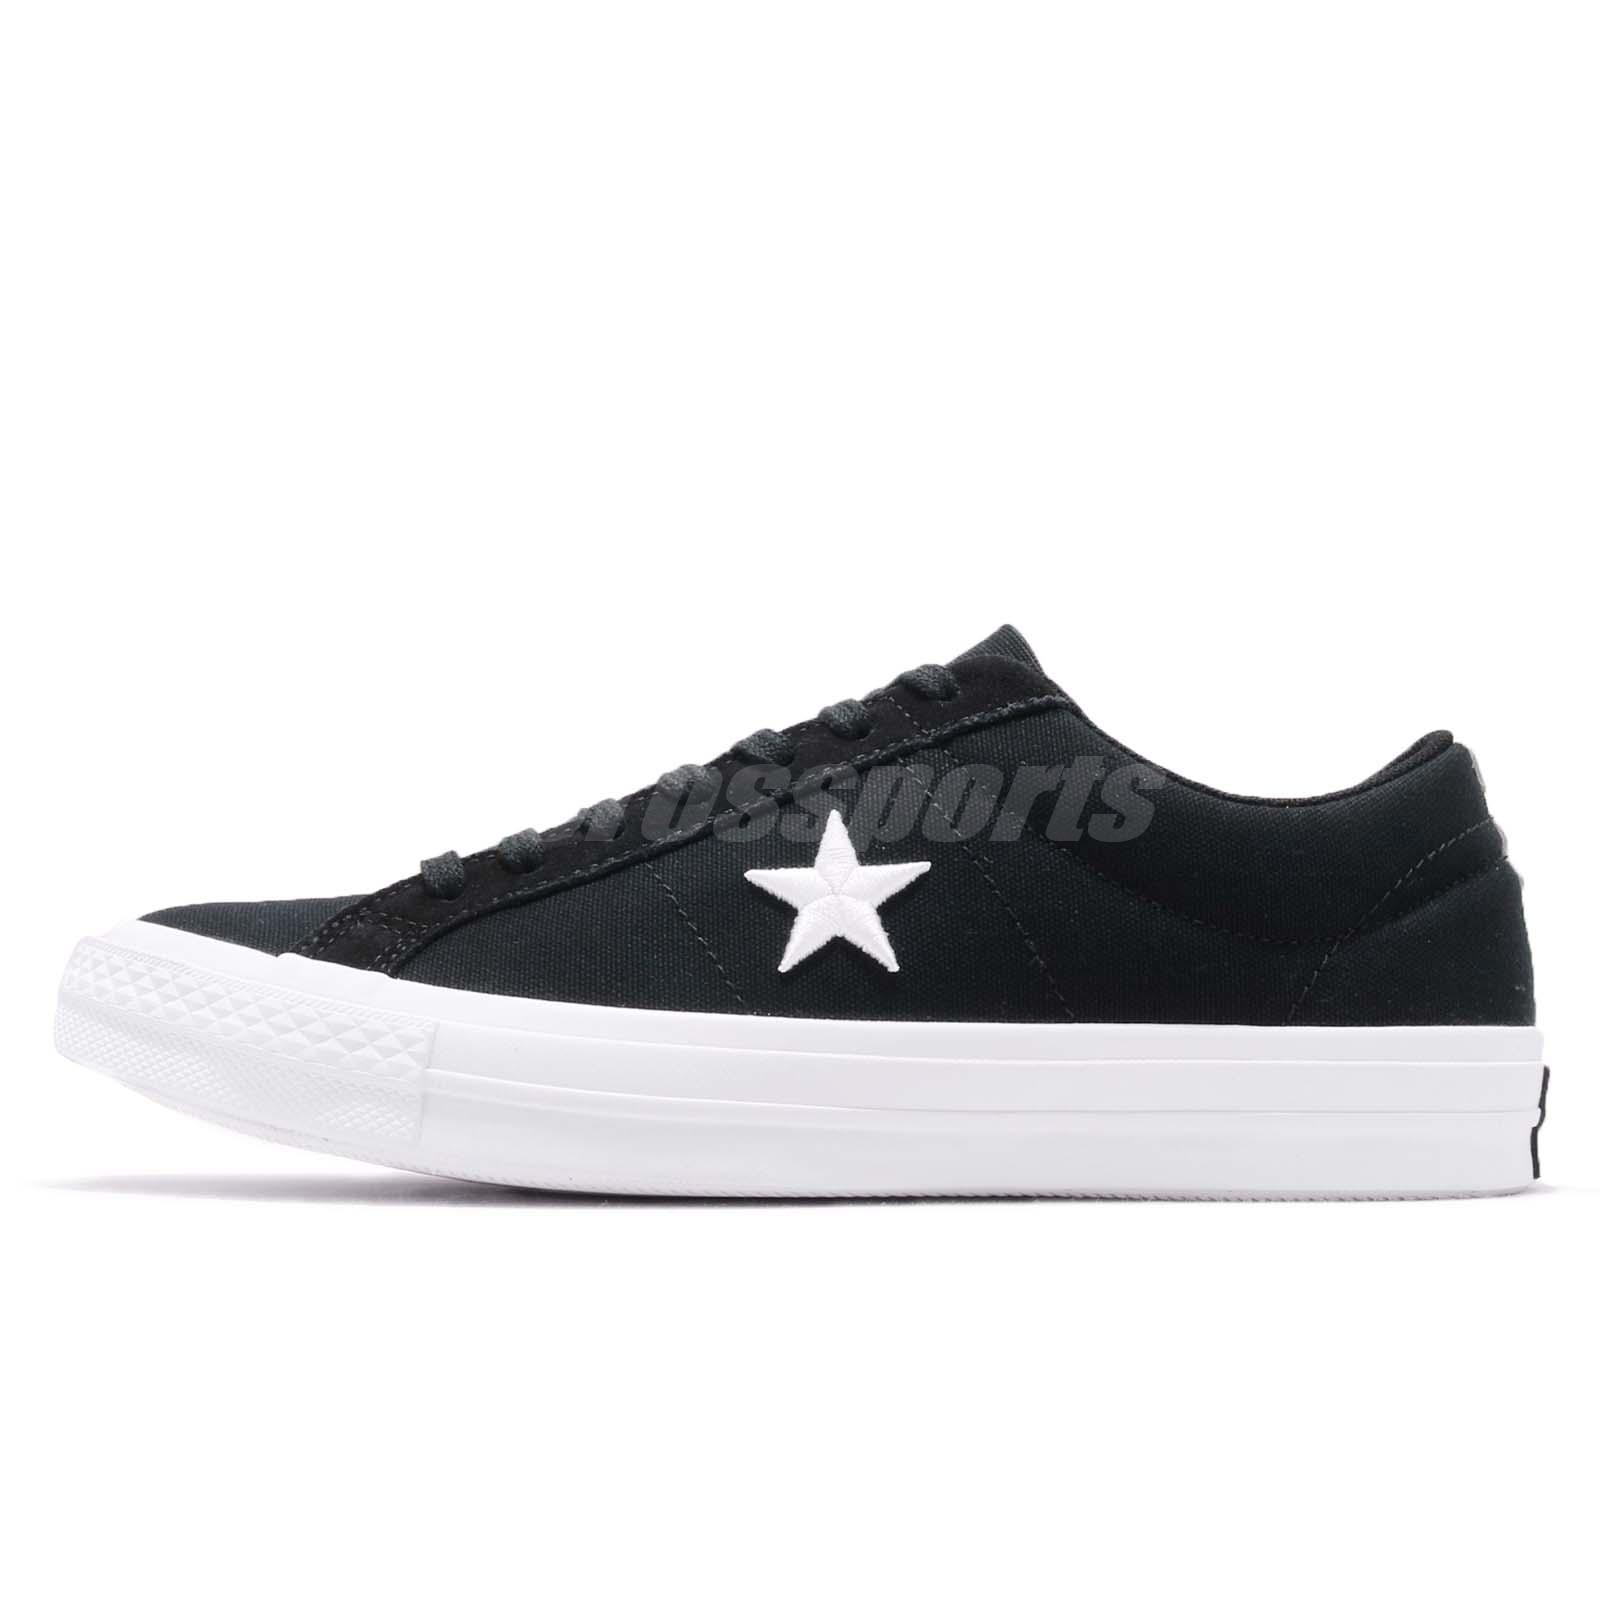 a3529f114e3c Converse One Star Low Black White Men Women Casual Shoes Sneakers 160600C